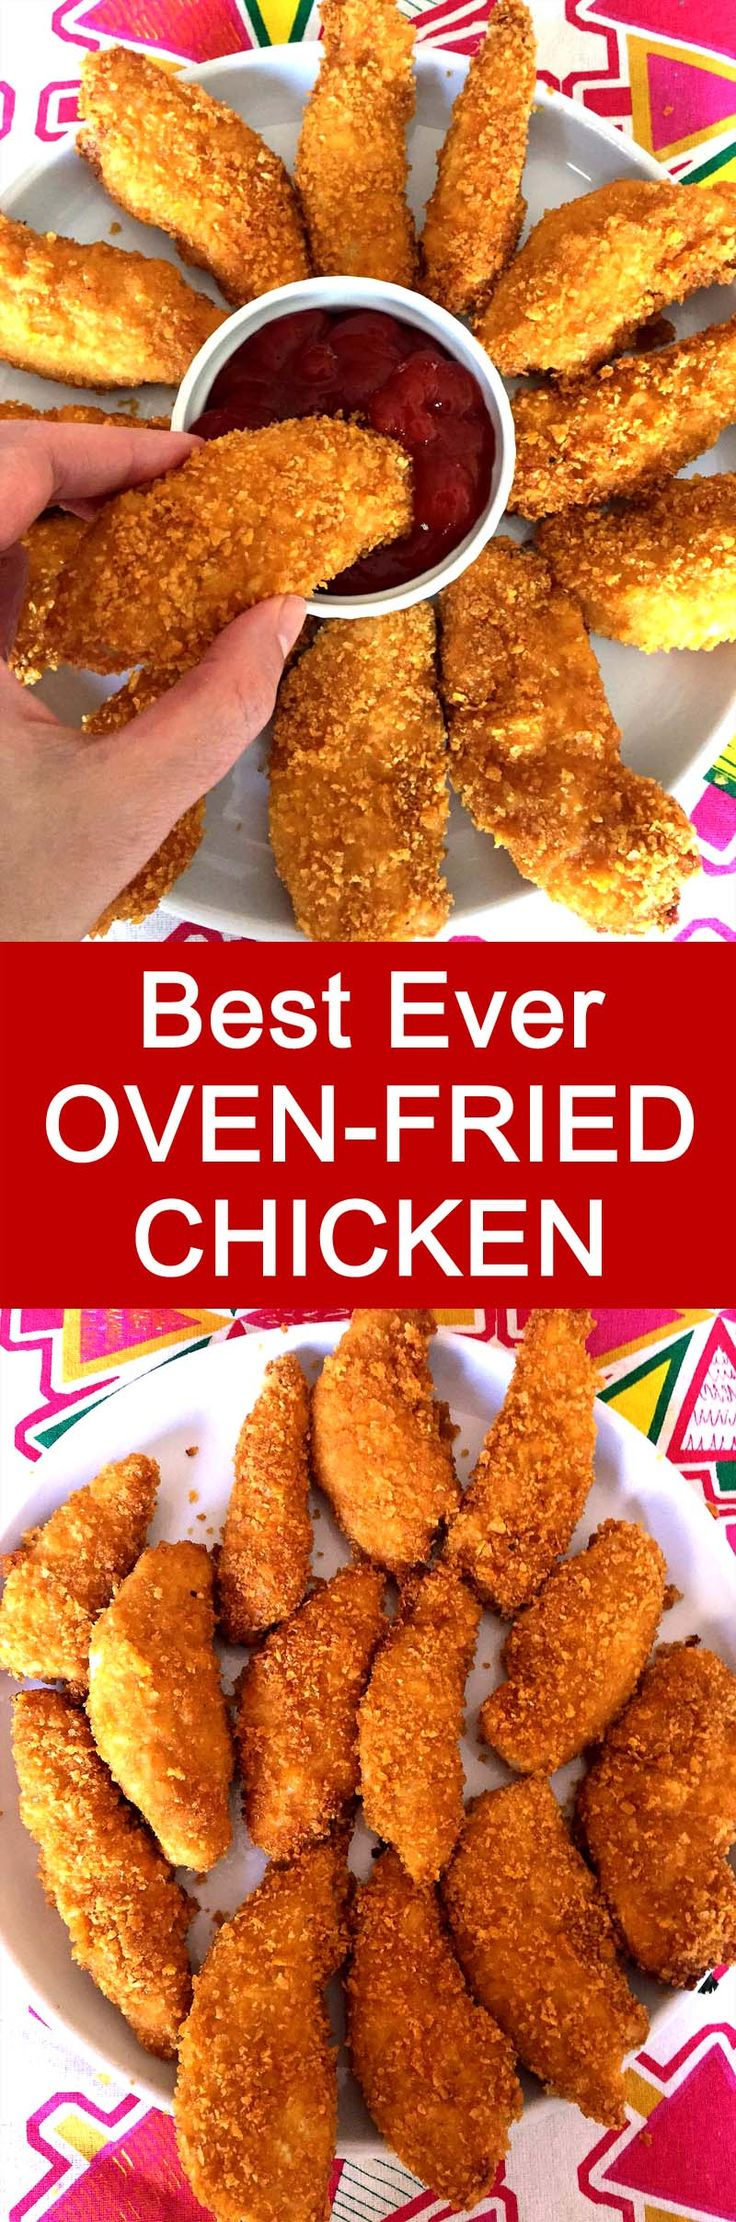 Tastes like real fried chicken, can't believe it's baked! So crispy! This is my favorite oven fried chicken recipe!